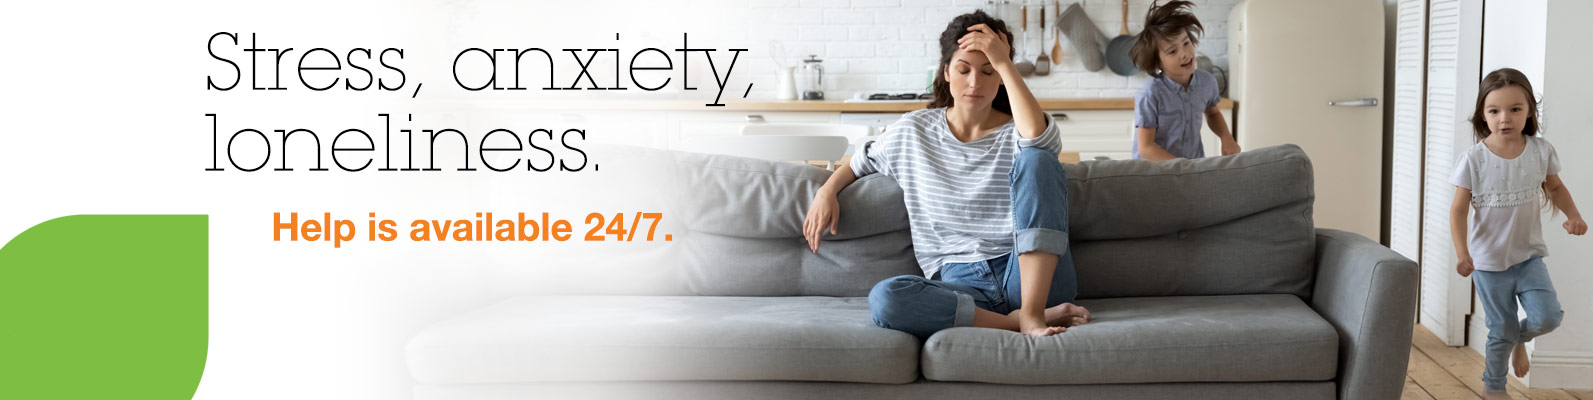 Stress, anxiety, loneliness. Help is available 24/7.